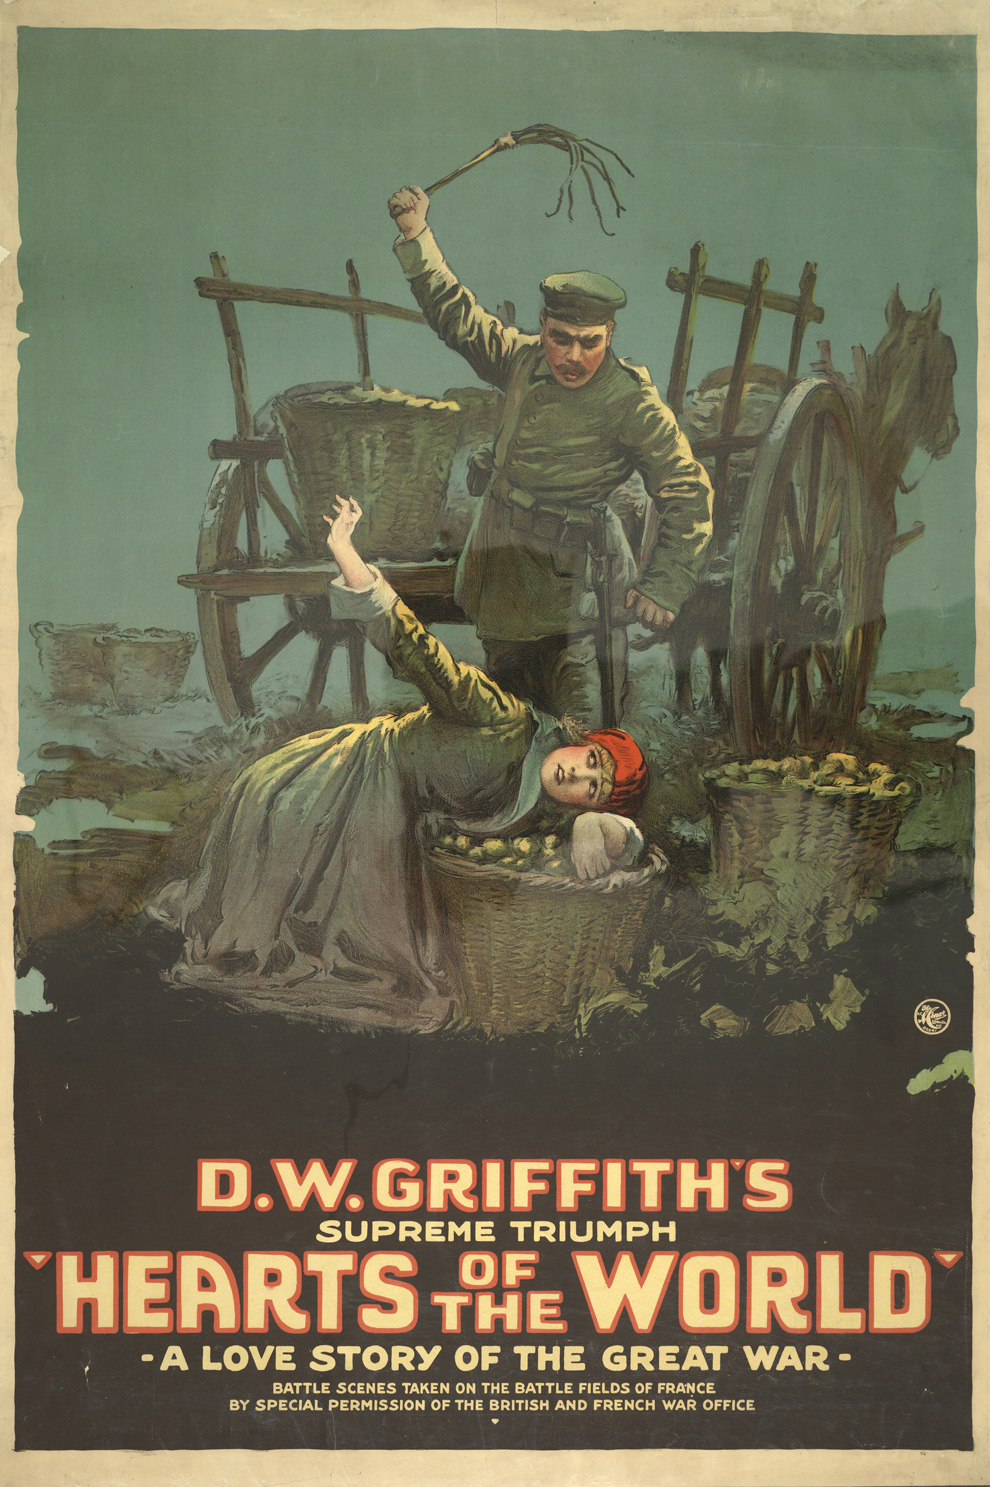 dw griffith essay Free essay: certain notable biographs—the musketeers of pig alley, the painted lady, a corner in wheat, the girl and her trust, the battle of elderbush.